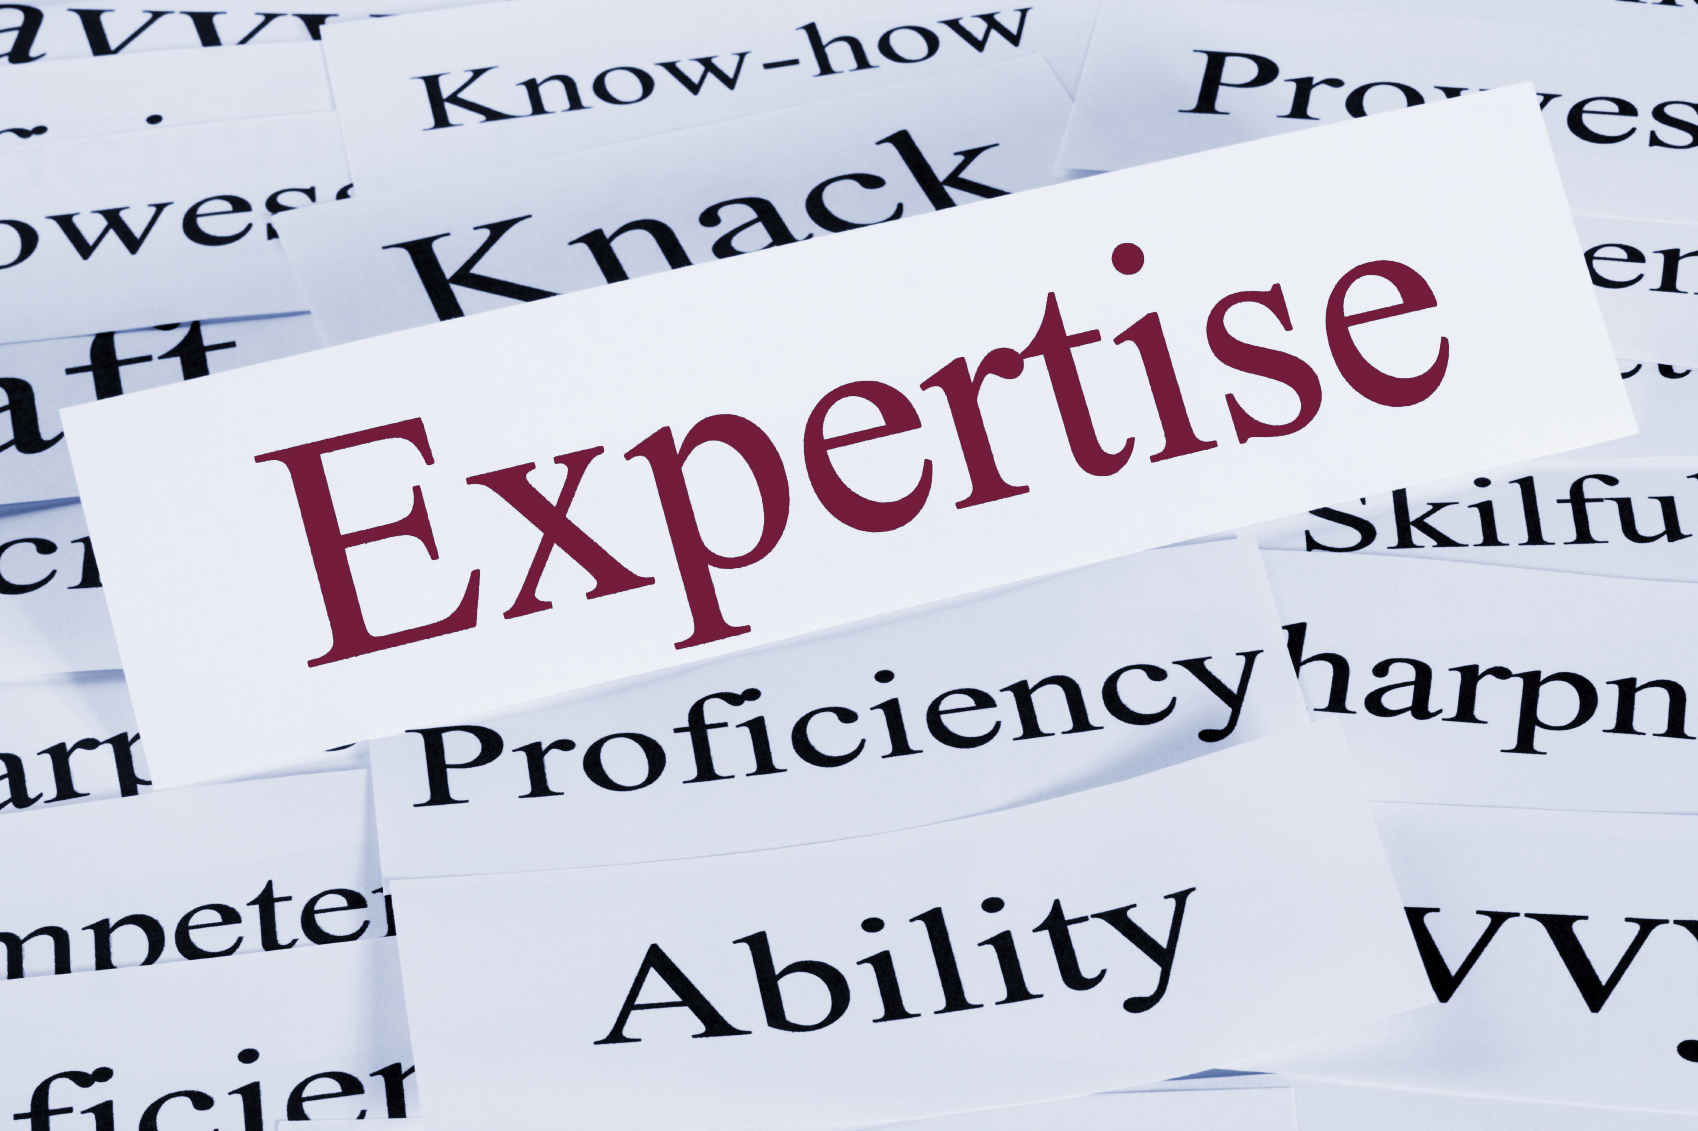 Expertise: Becoming an Ethical Expert